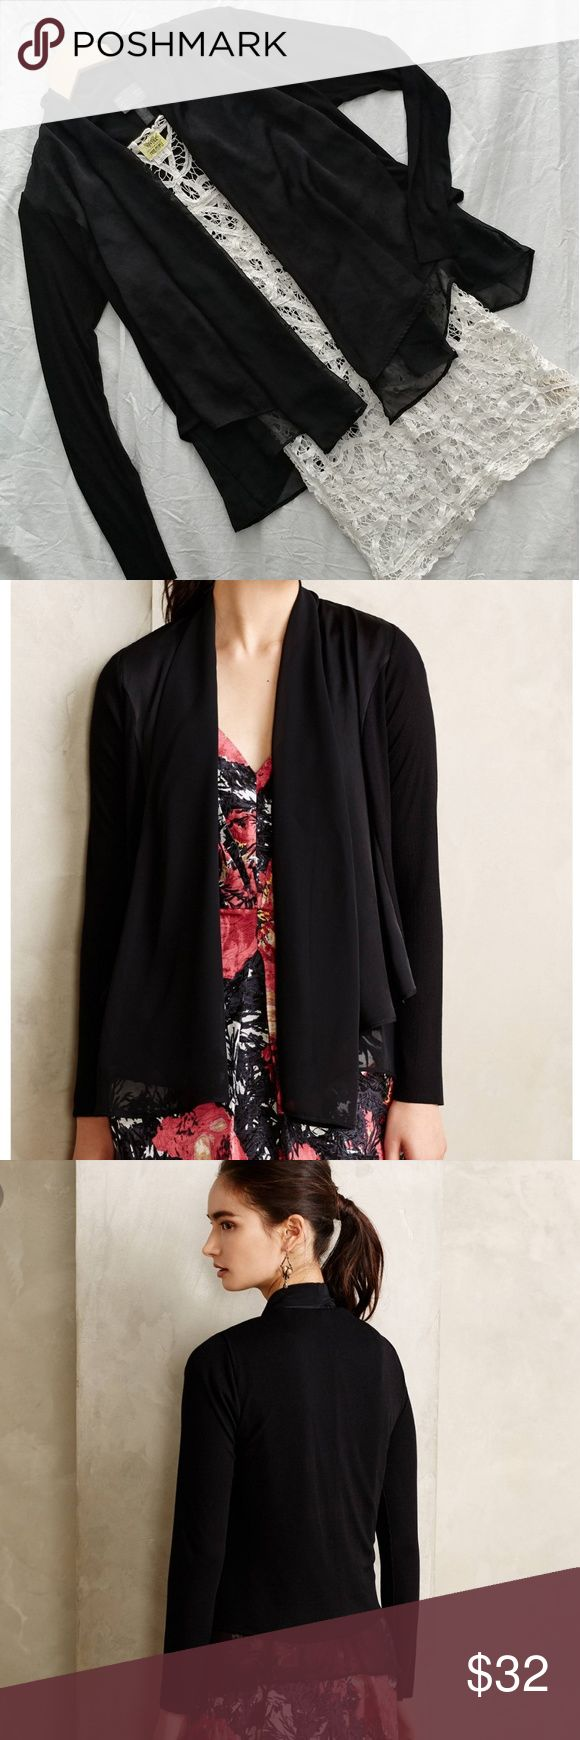 "Anthropologie Saturday Sunday Lola Black Cardigan Gorgeous Saturday Sunday by Anthropologie Lola cardigan size Medium. It has a soft layered look and is great to dress up or down. Perfect for layering. Excellent pre loved condition. Looks washed/worn once or twice. No defects and from a smoke and pet free home.  Shoulder to hem 21"" long. Armpit to Armpit 20"" across. Anthropologie Sweaters Cardigans"